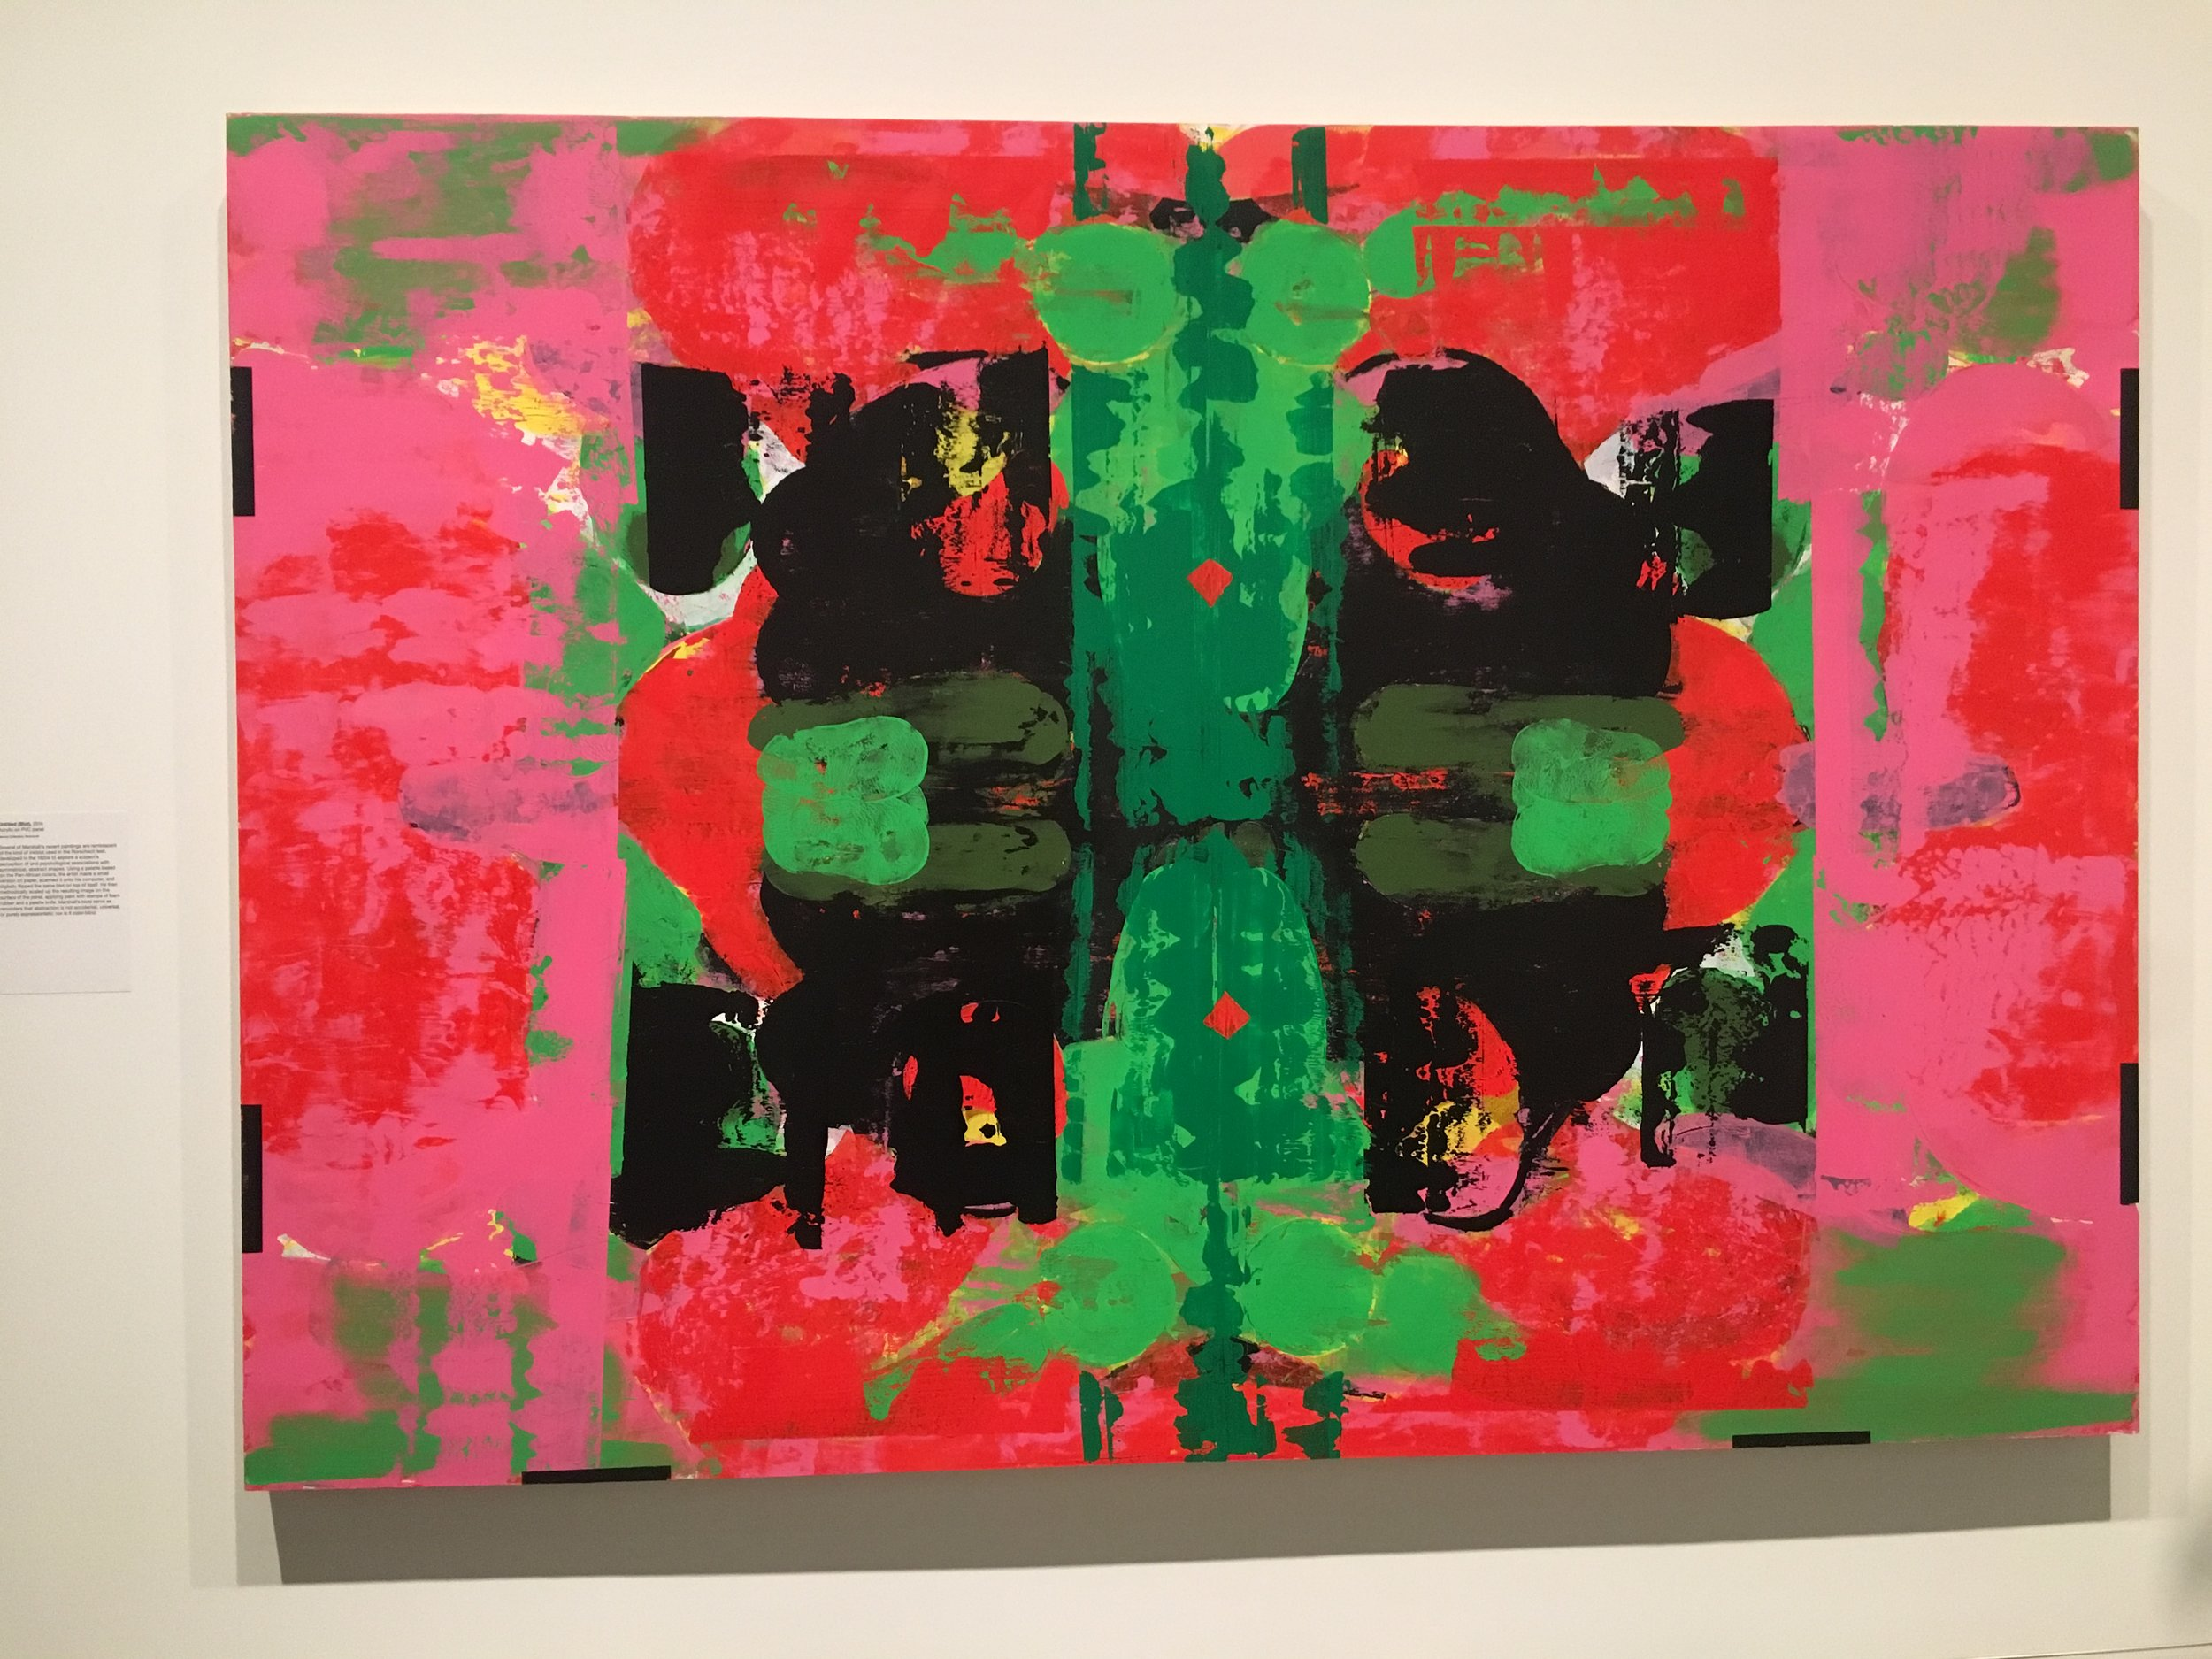 Untitled (Blot), 2015, Acrylic on PVC panel, Collection of Guy Laliberte